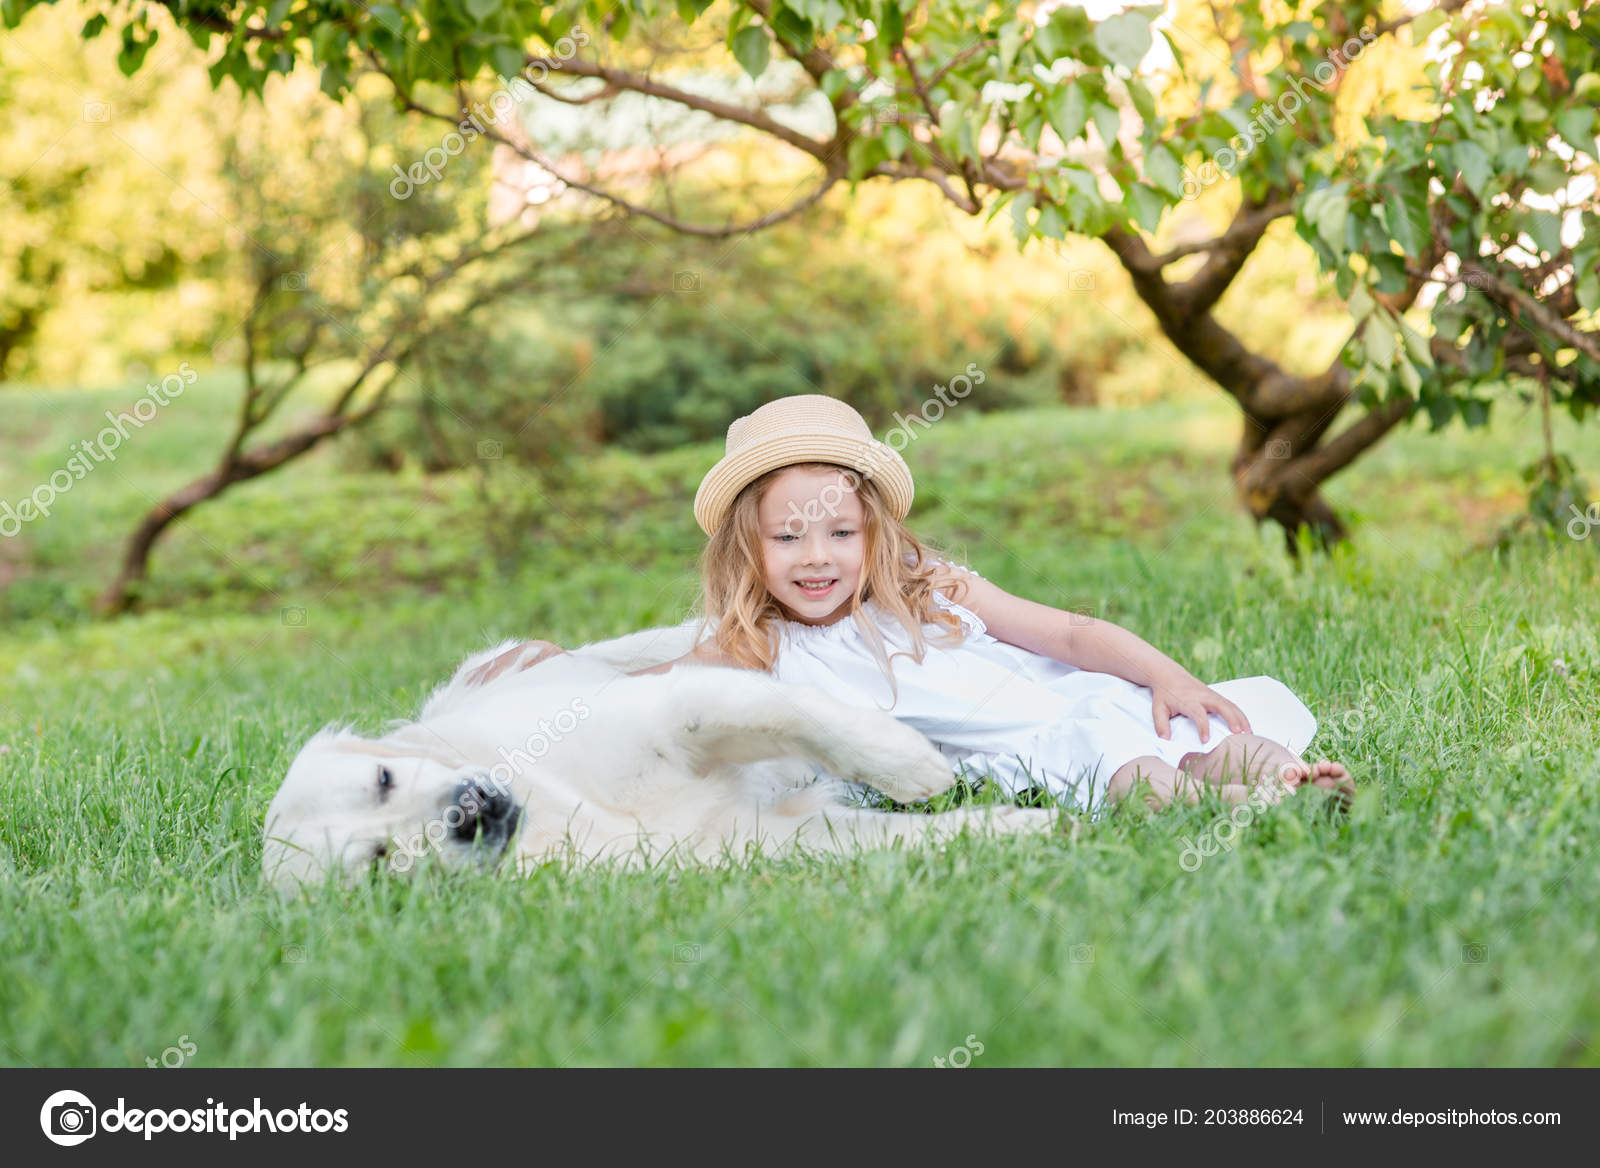 Little Girl With A Big White Dog In The Park A Beautiful 5 Year Old Girl In White Dress Hugs Her Favorite Dog During A Summer Walk Photo By